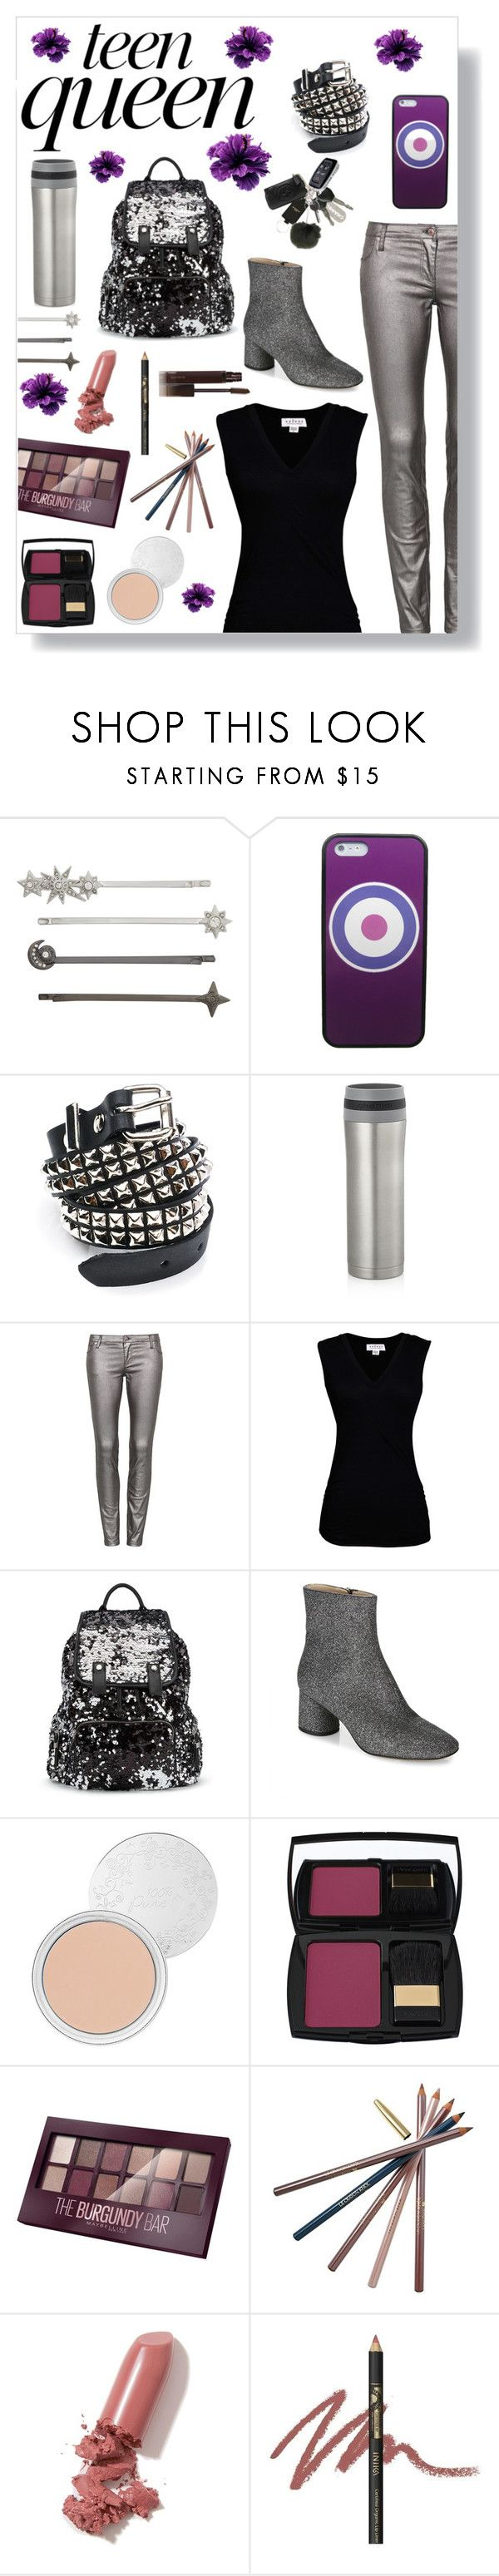 """Style Spotlight: Rebecca Barton"" by capfan2014 ❤ liked on Polyvore featuring Henri Bendel, Marvel, Funk Plus, Crate and Barrel, sass & bide, Velvet by Graham & Spencer, Miss Selfridge, Marc Jacobs, 100% Pure and Lancôme"